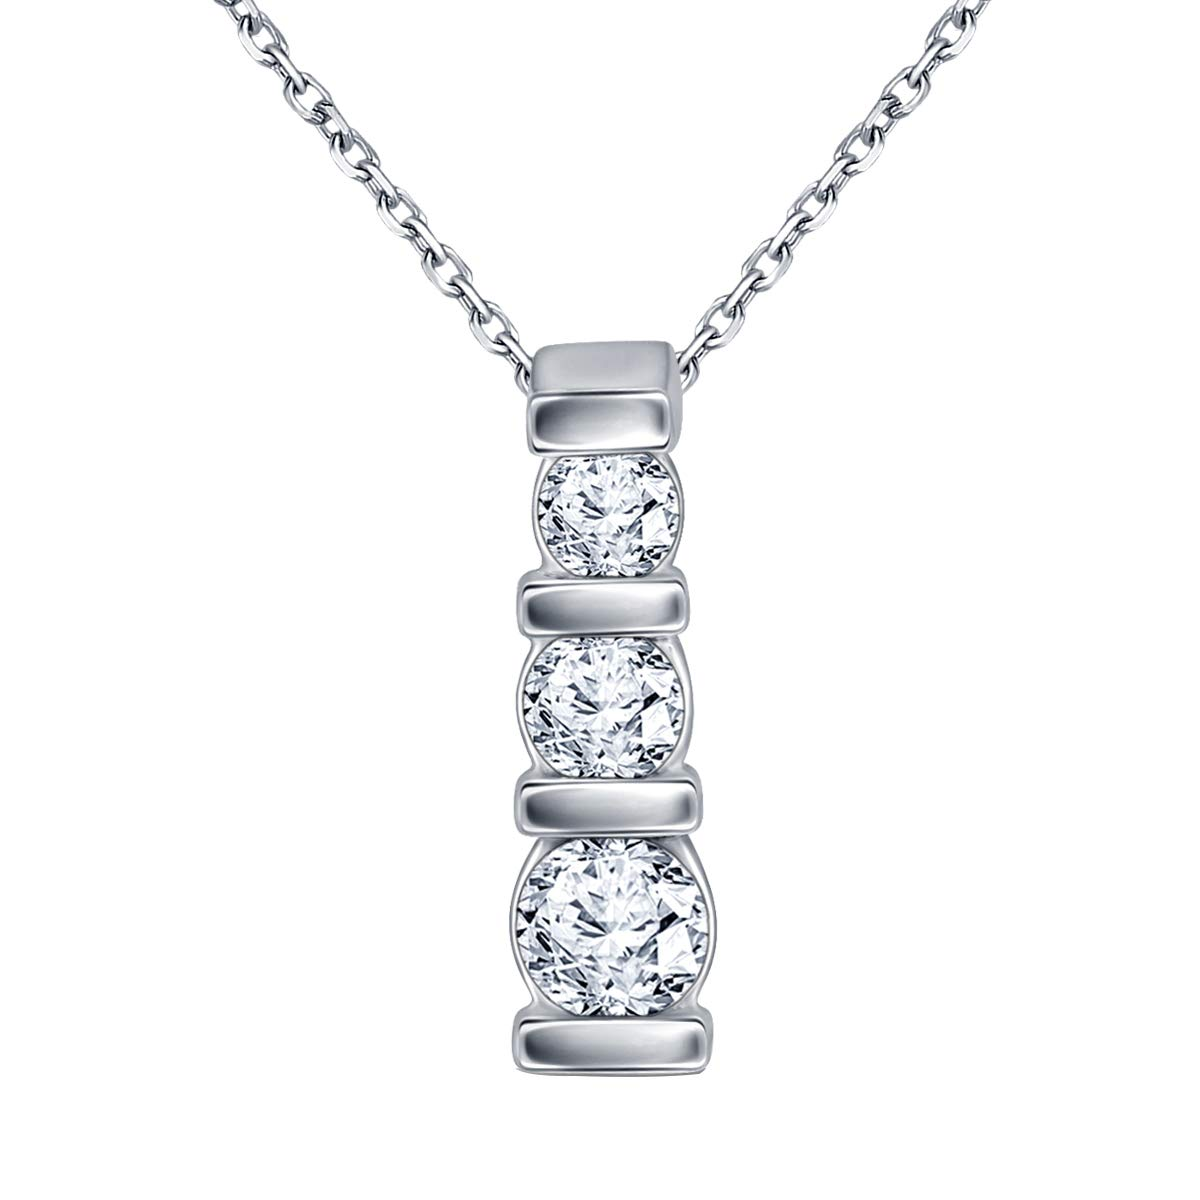 Ringjewels 3 Stone Drop Pendant Necklace with 18 Chain 0.48 Ct Round CZ Diamond 14K White Gold Plated